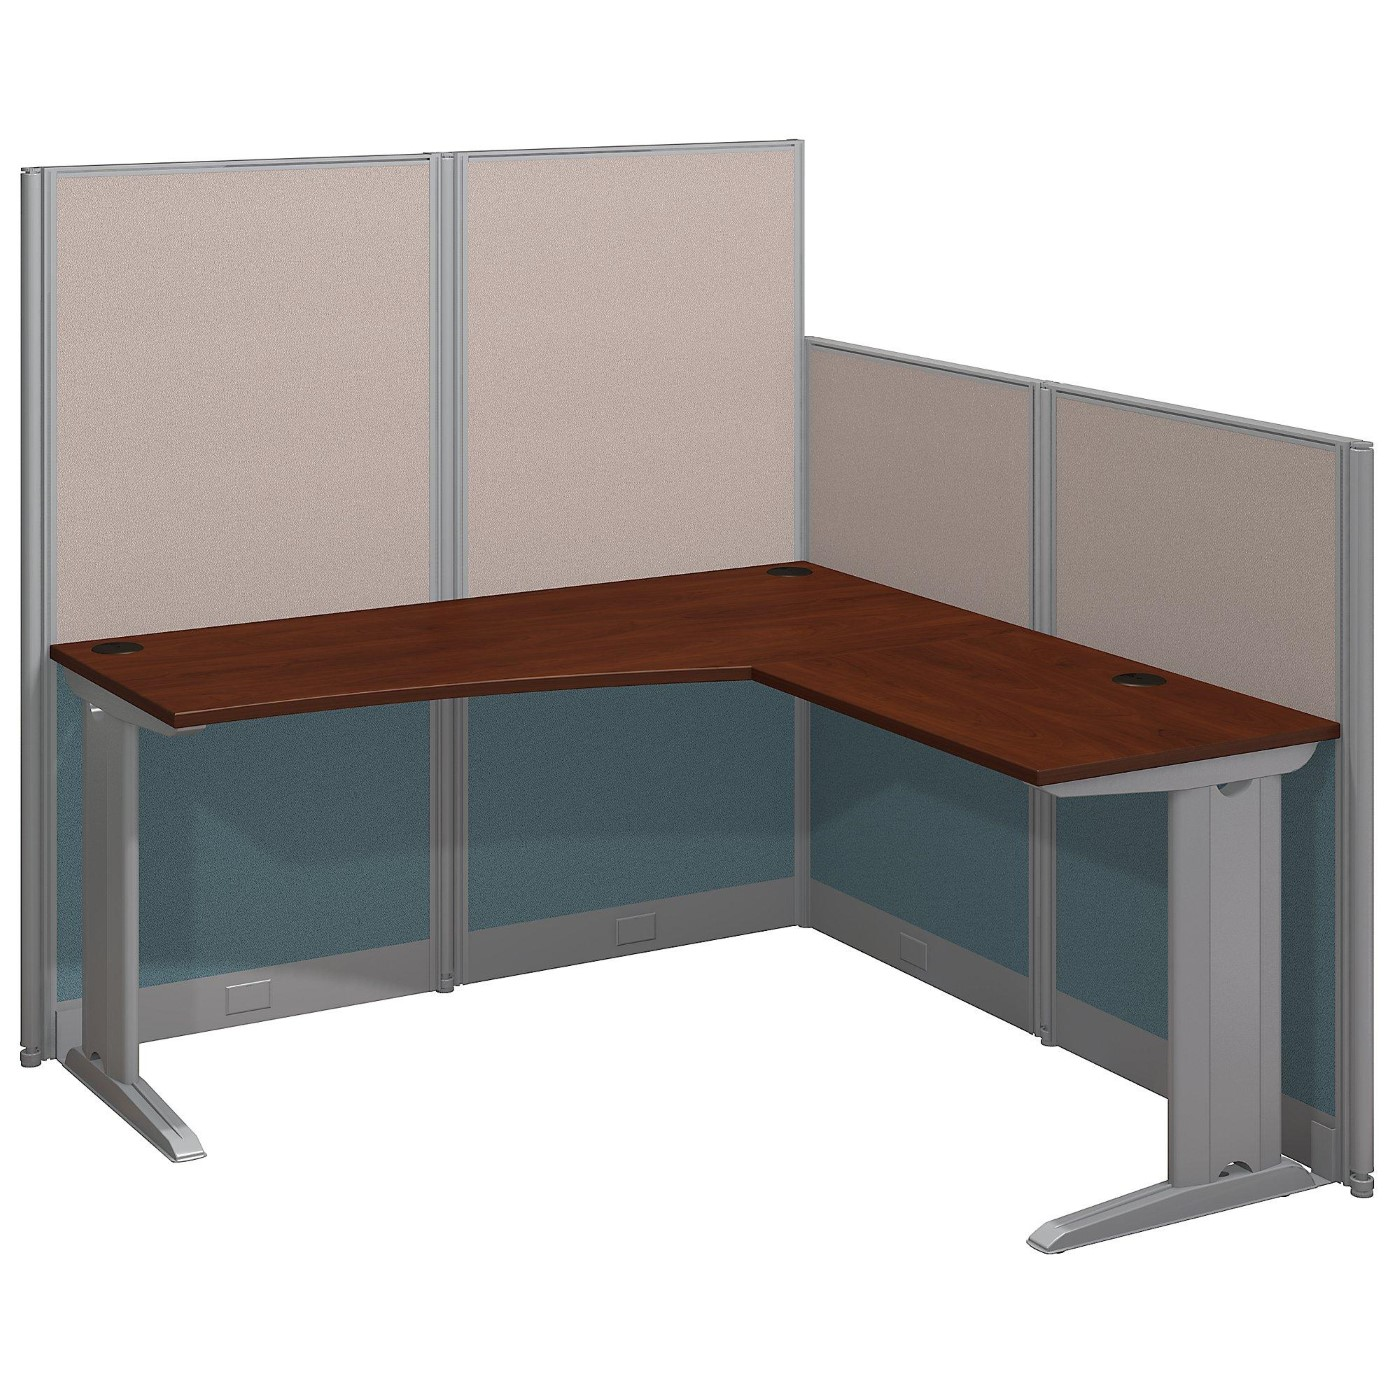 <font color=#c60><b>BUSH BUSINESS FURNITURE OFFICE IN AN HOUR 65W X 65D L SHAPED CUBICLE WORKSTATION. FREE SHIPPING</font></b></font></b>